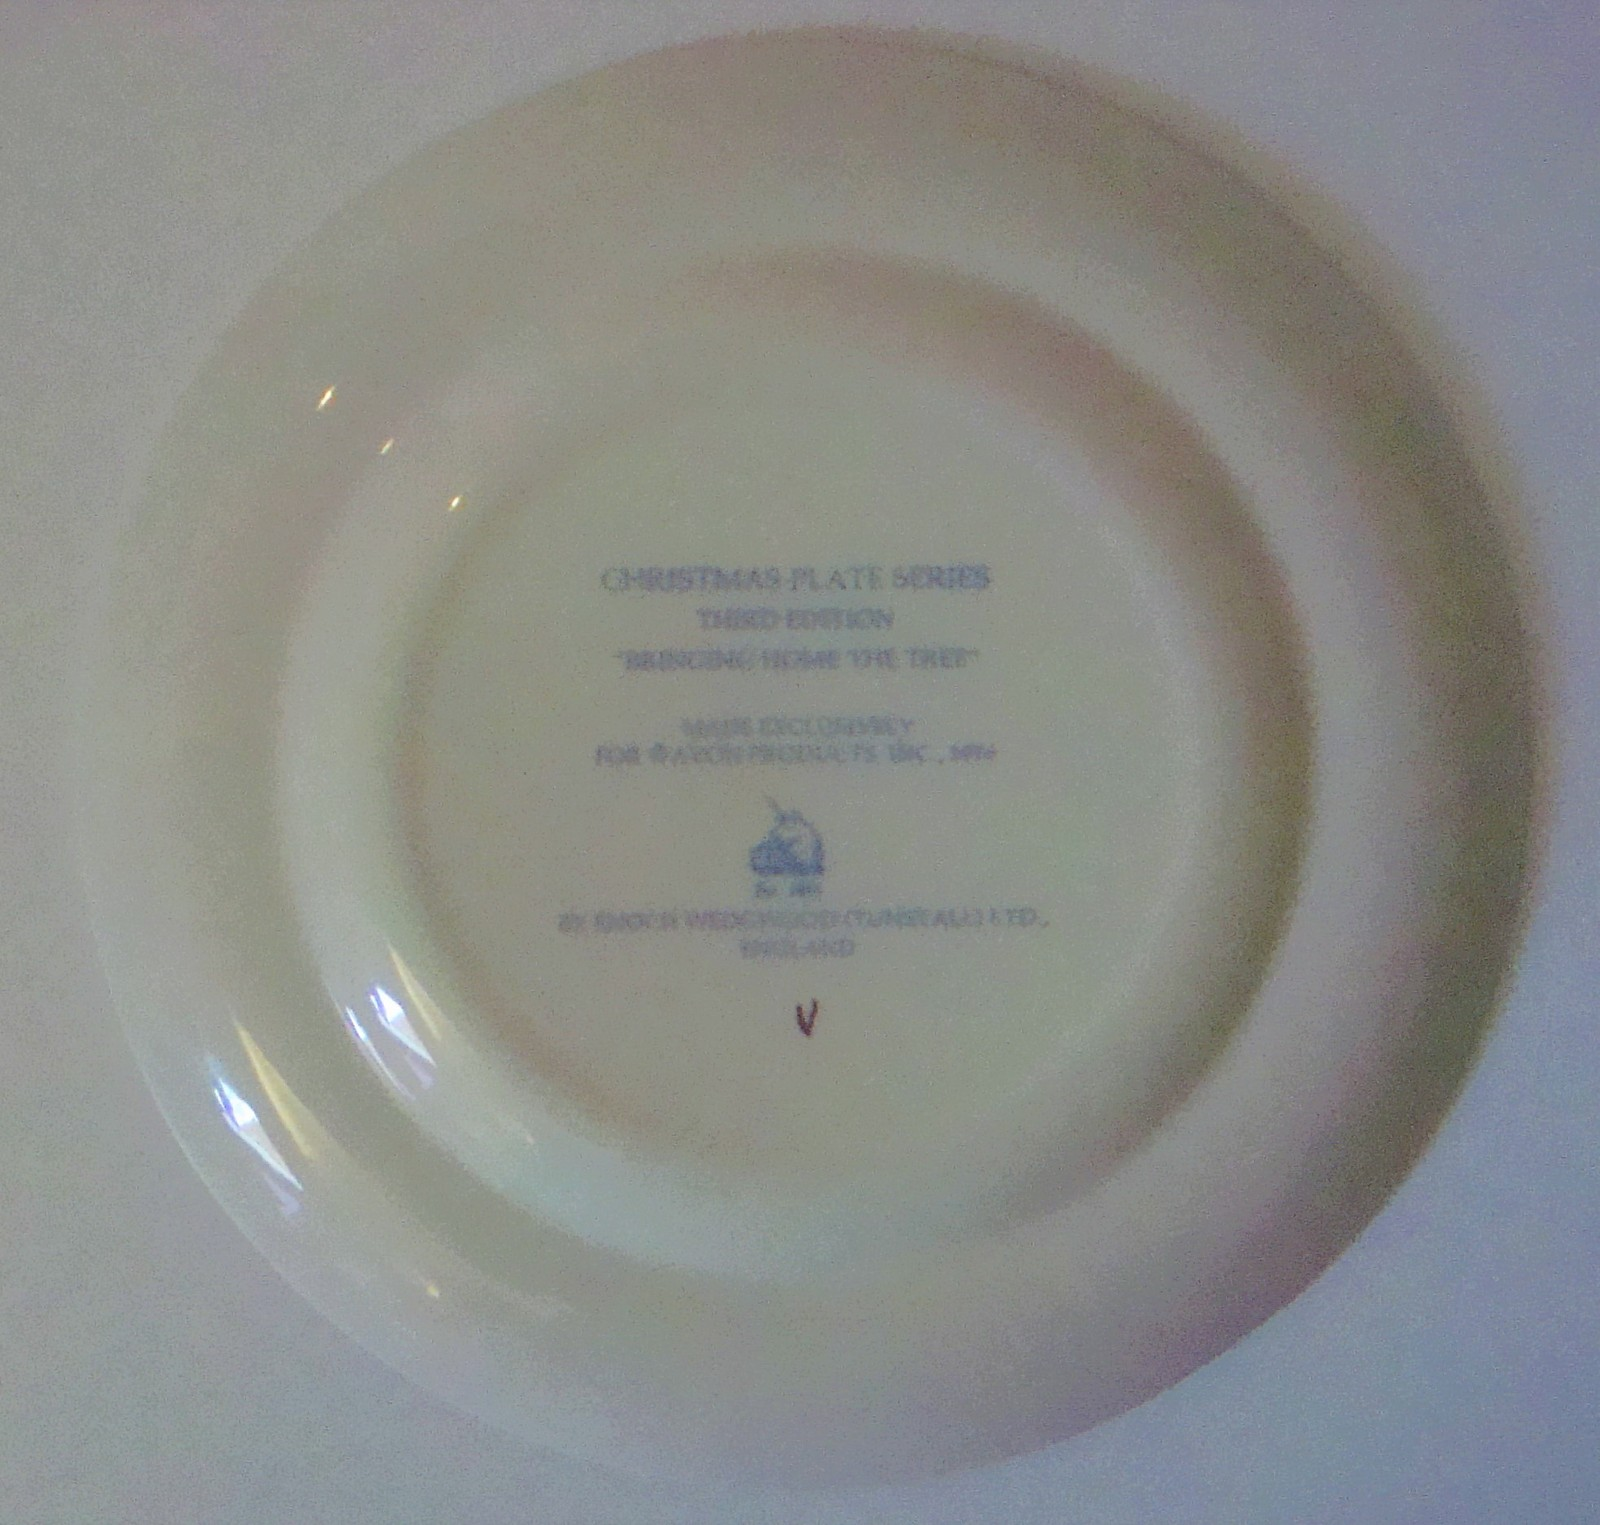 Avon Bringing Home the Tree Christmas Plate 1976 by Wedgewood, with box